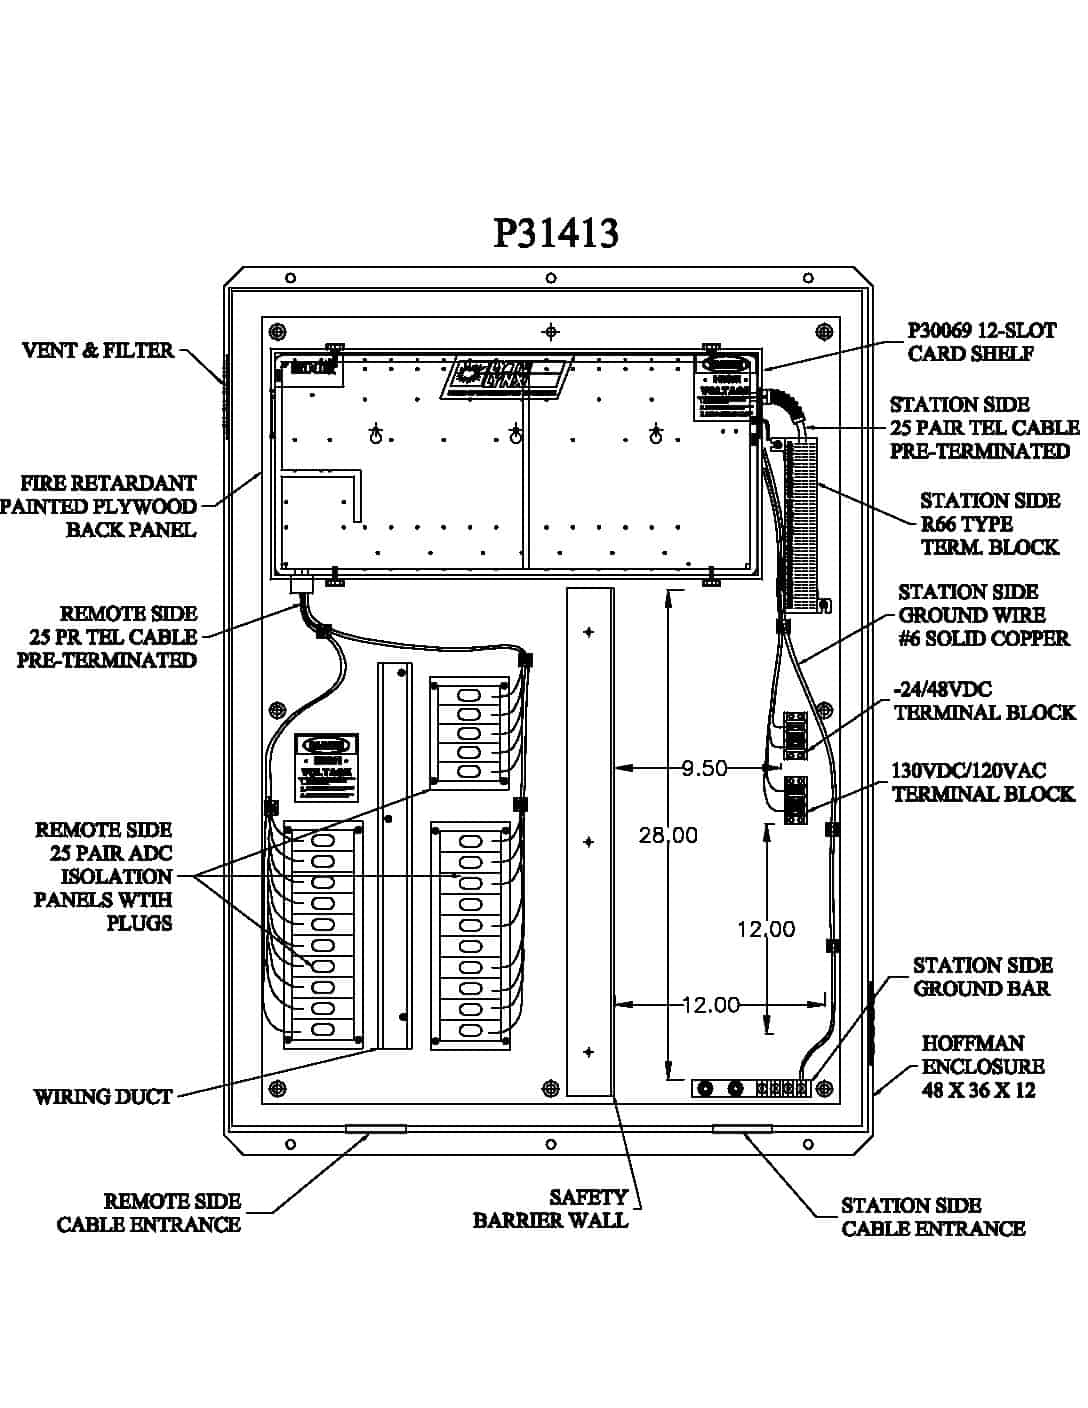 P31413 Turnkey Protection Packages – 12 slot PDF thumbnail